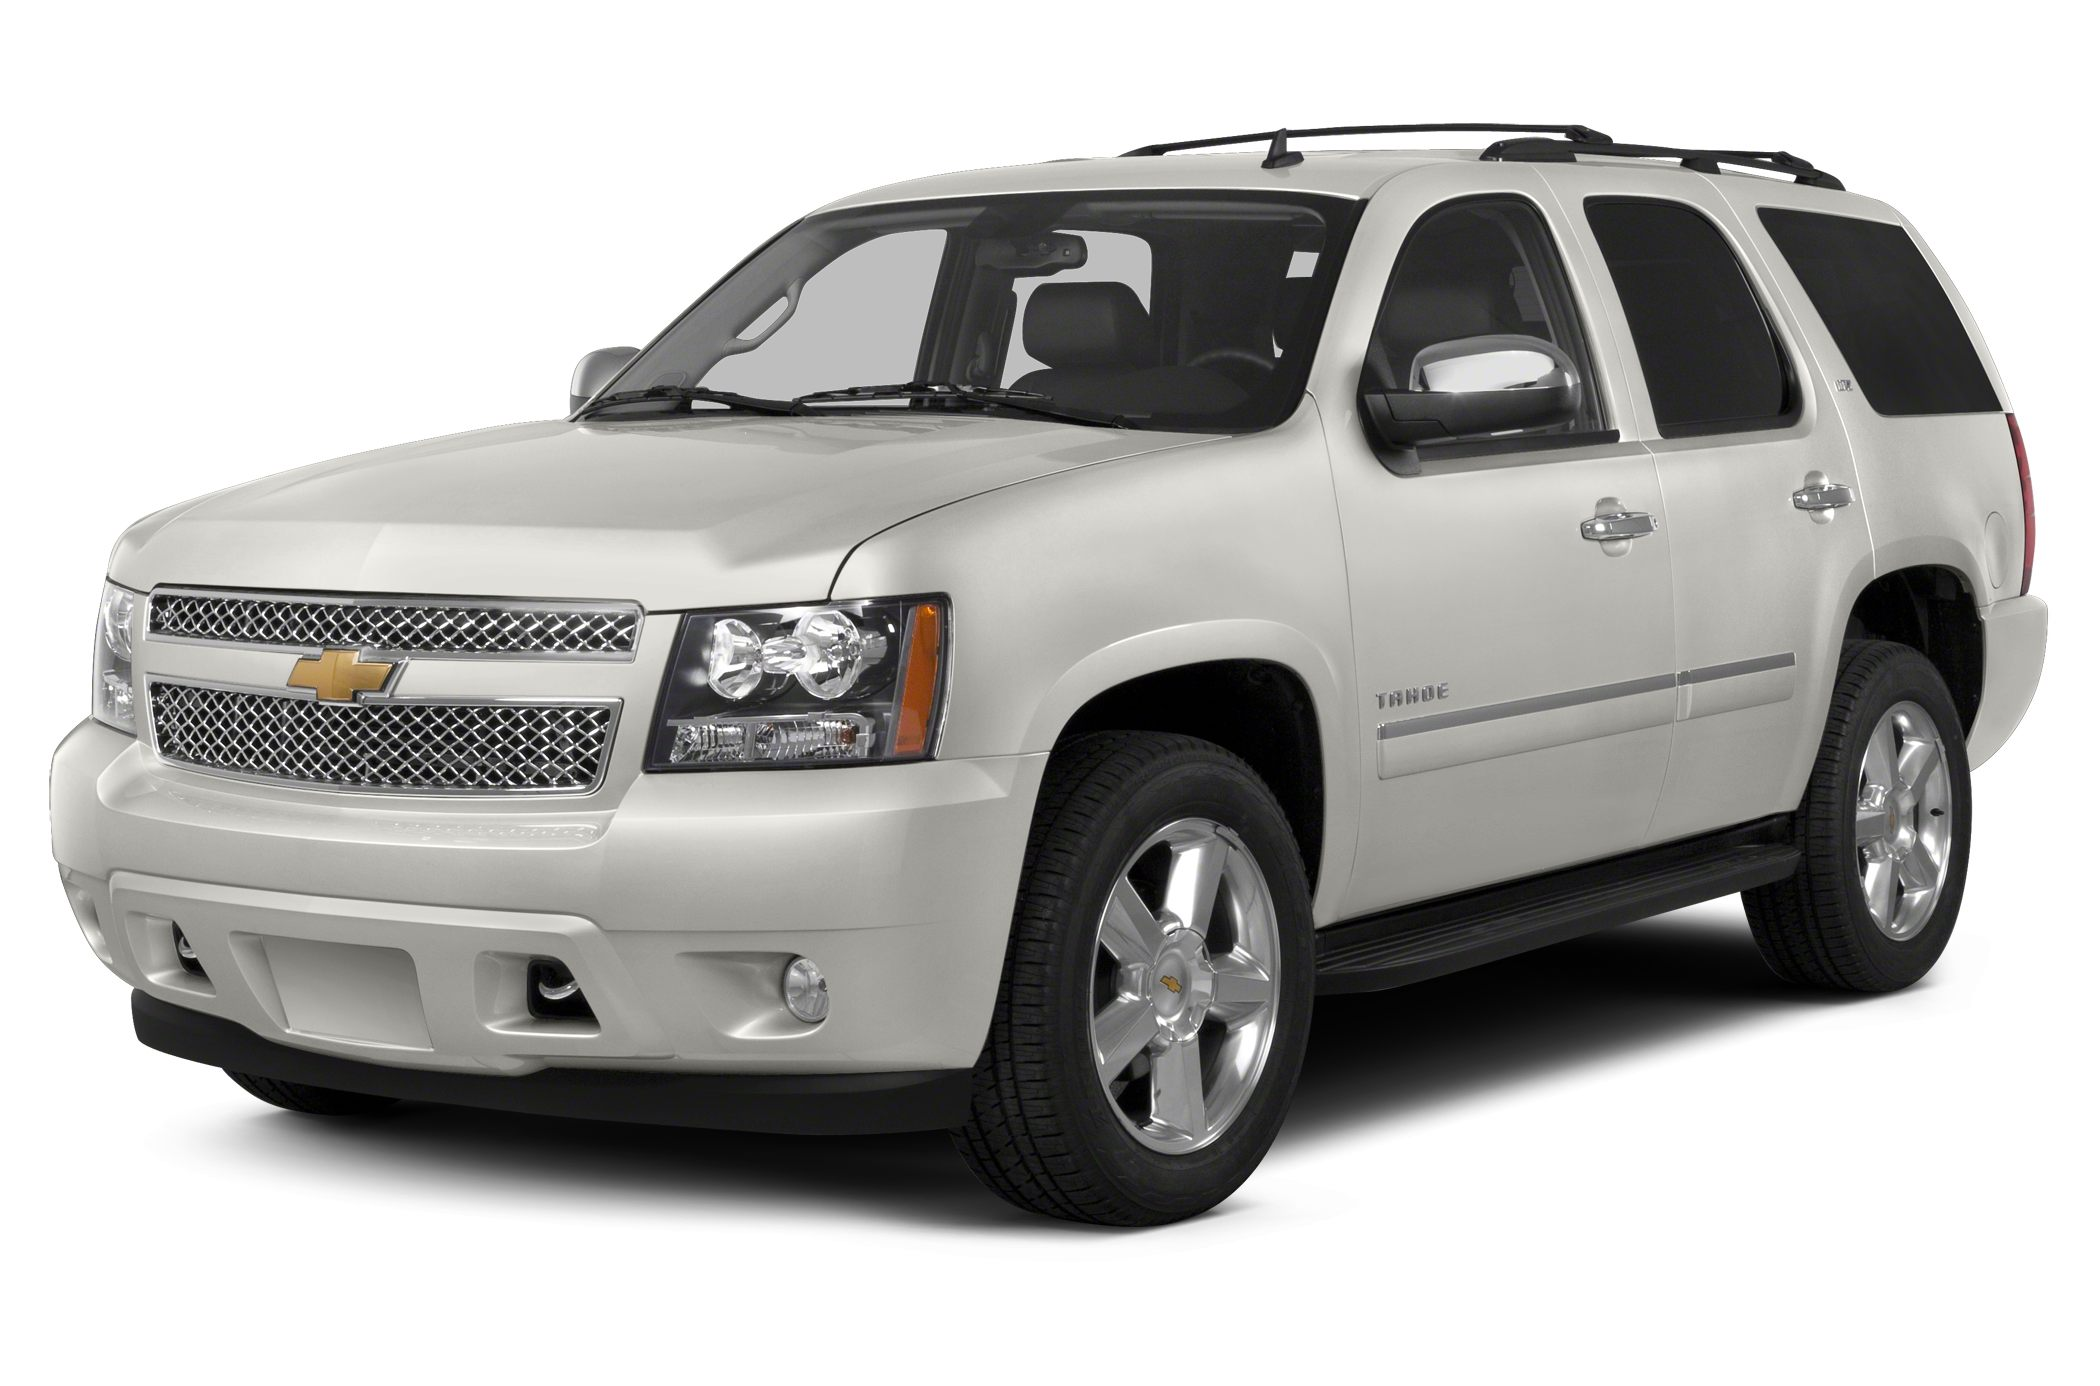 2014 Chevrolet Tahoe LT SUV for sale in Ruidoso for $0 with 29,390 miles